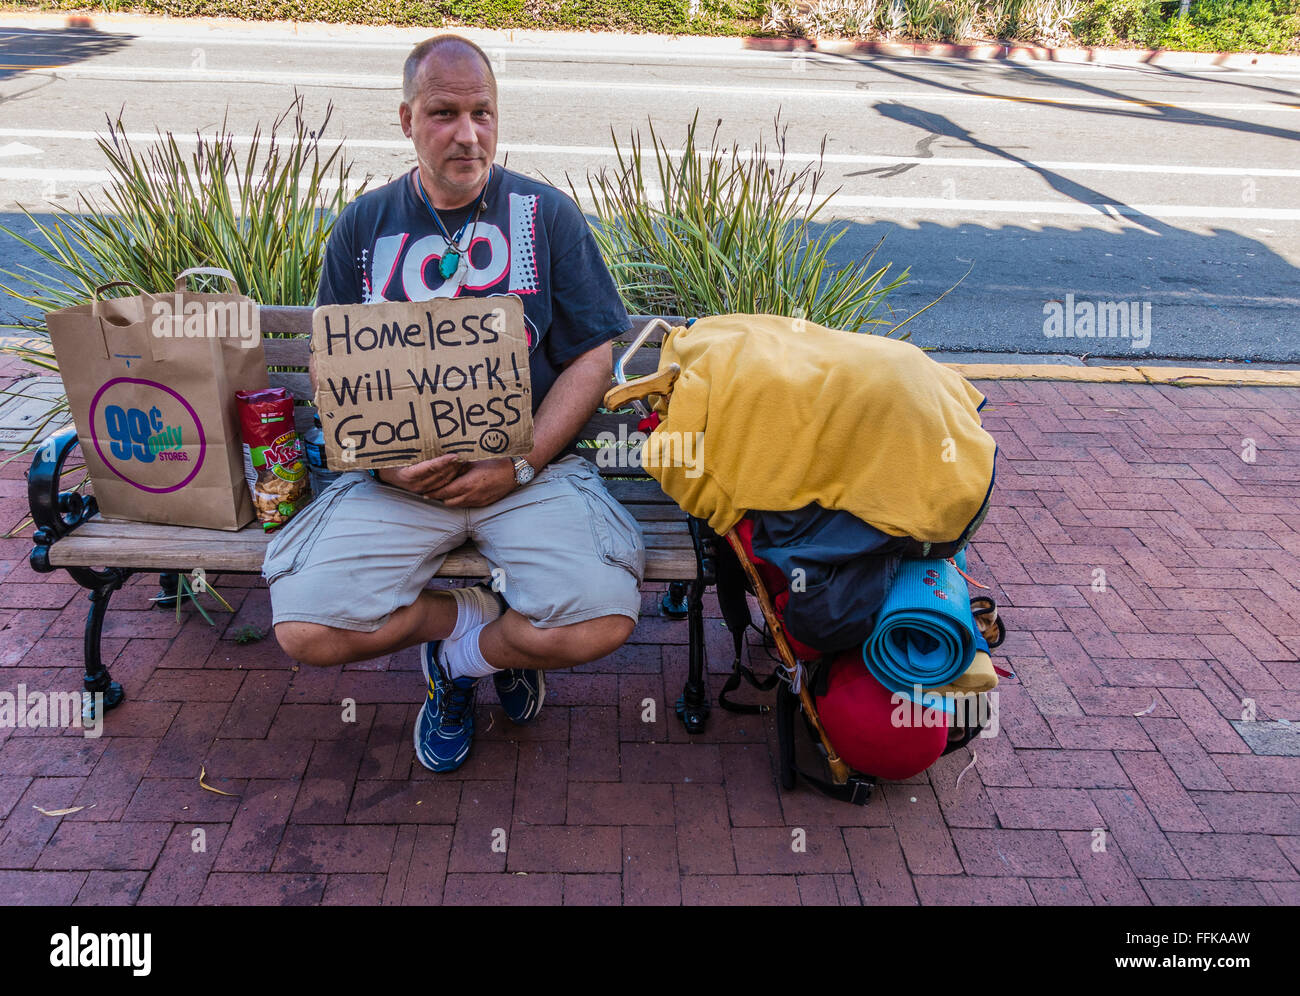 A middle-aged male beggar sits on a public bench on a State Street sidewalk holding a sign that says 'homeless, - Stock Image